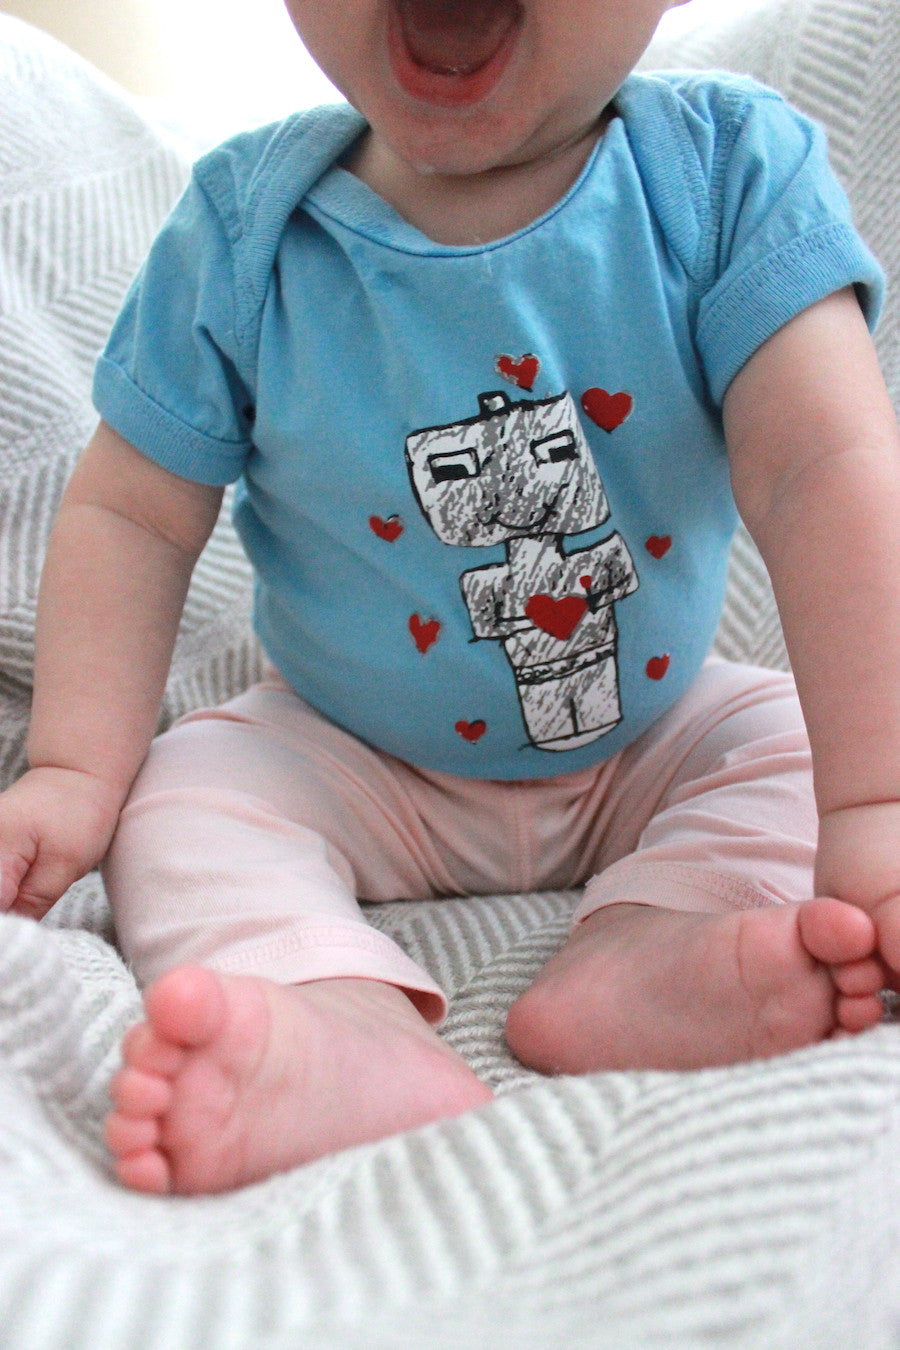 Robots with Heart Onesie - Baby Onesie - Rightside Shirts - 3